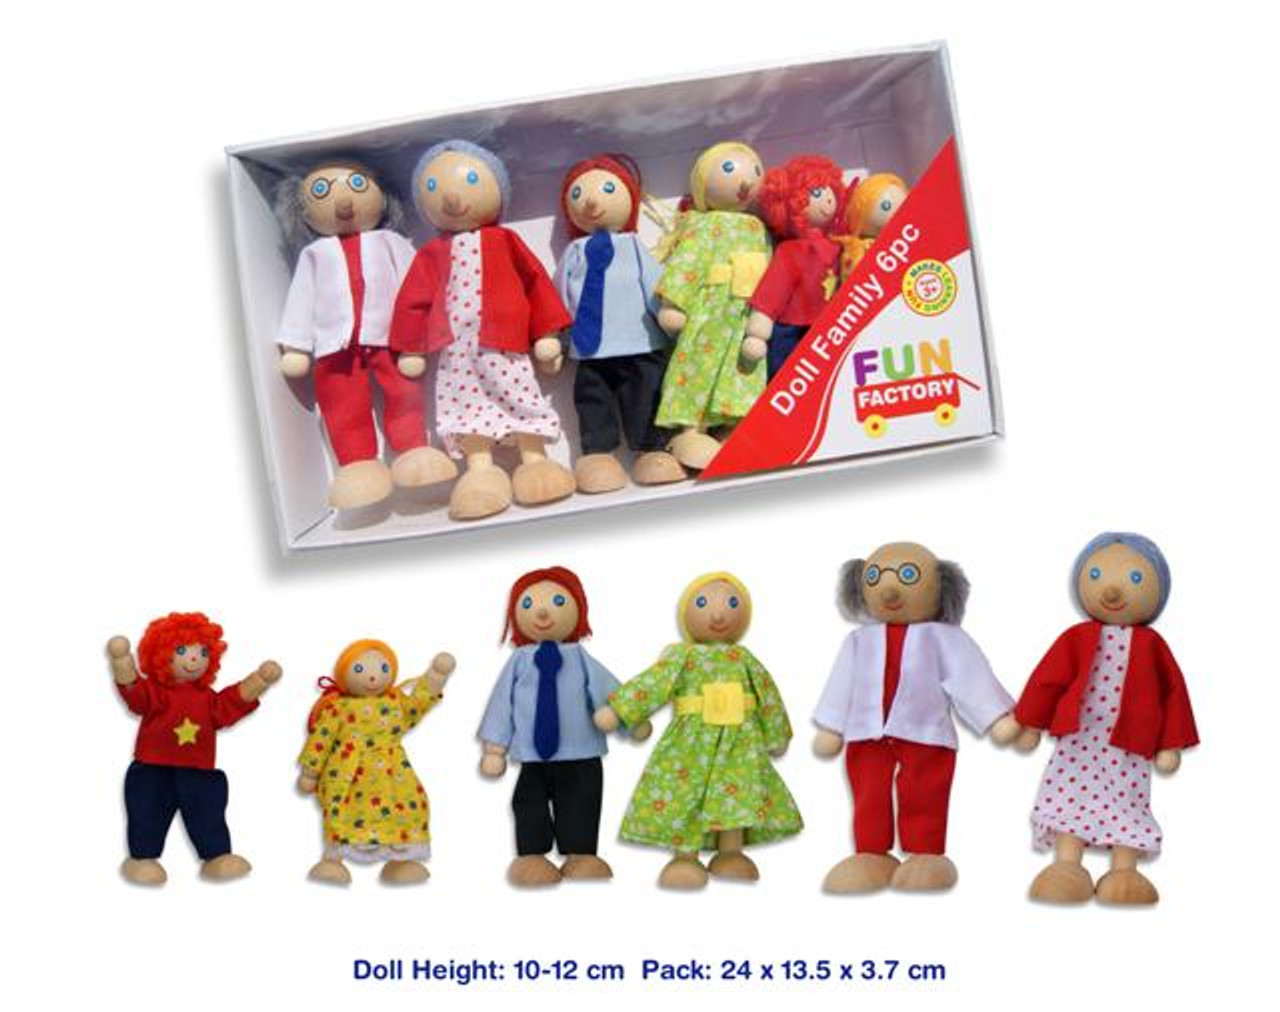 Fun Factory Wooden Doll Family 6pc Set at Baby Barn Discounts A fun budget friendly wooden family doll set from Fun Factory.